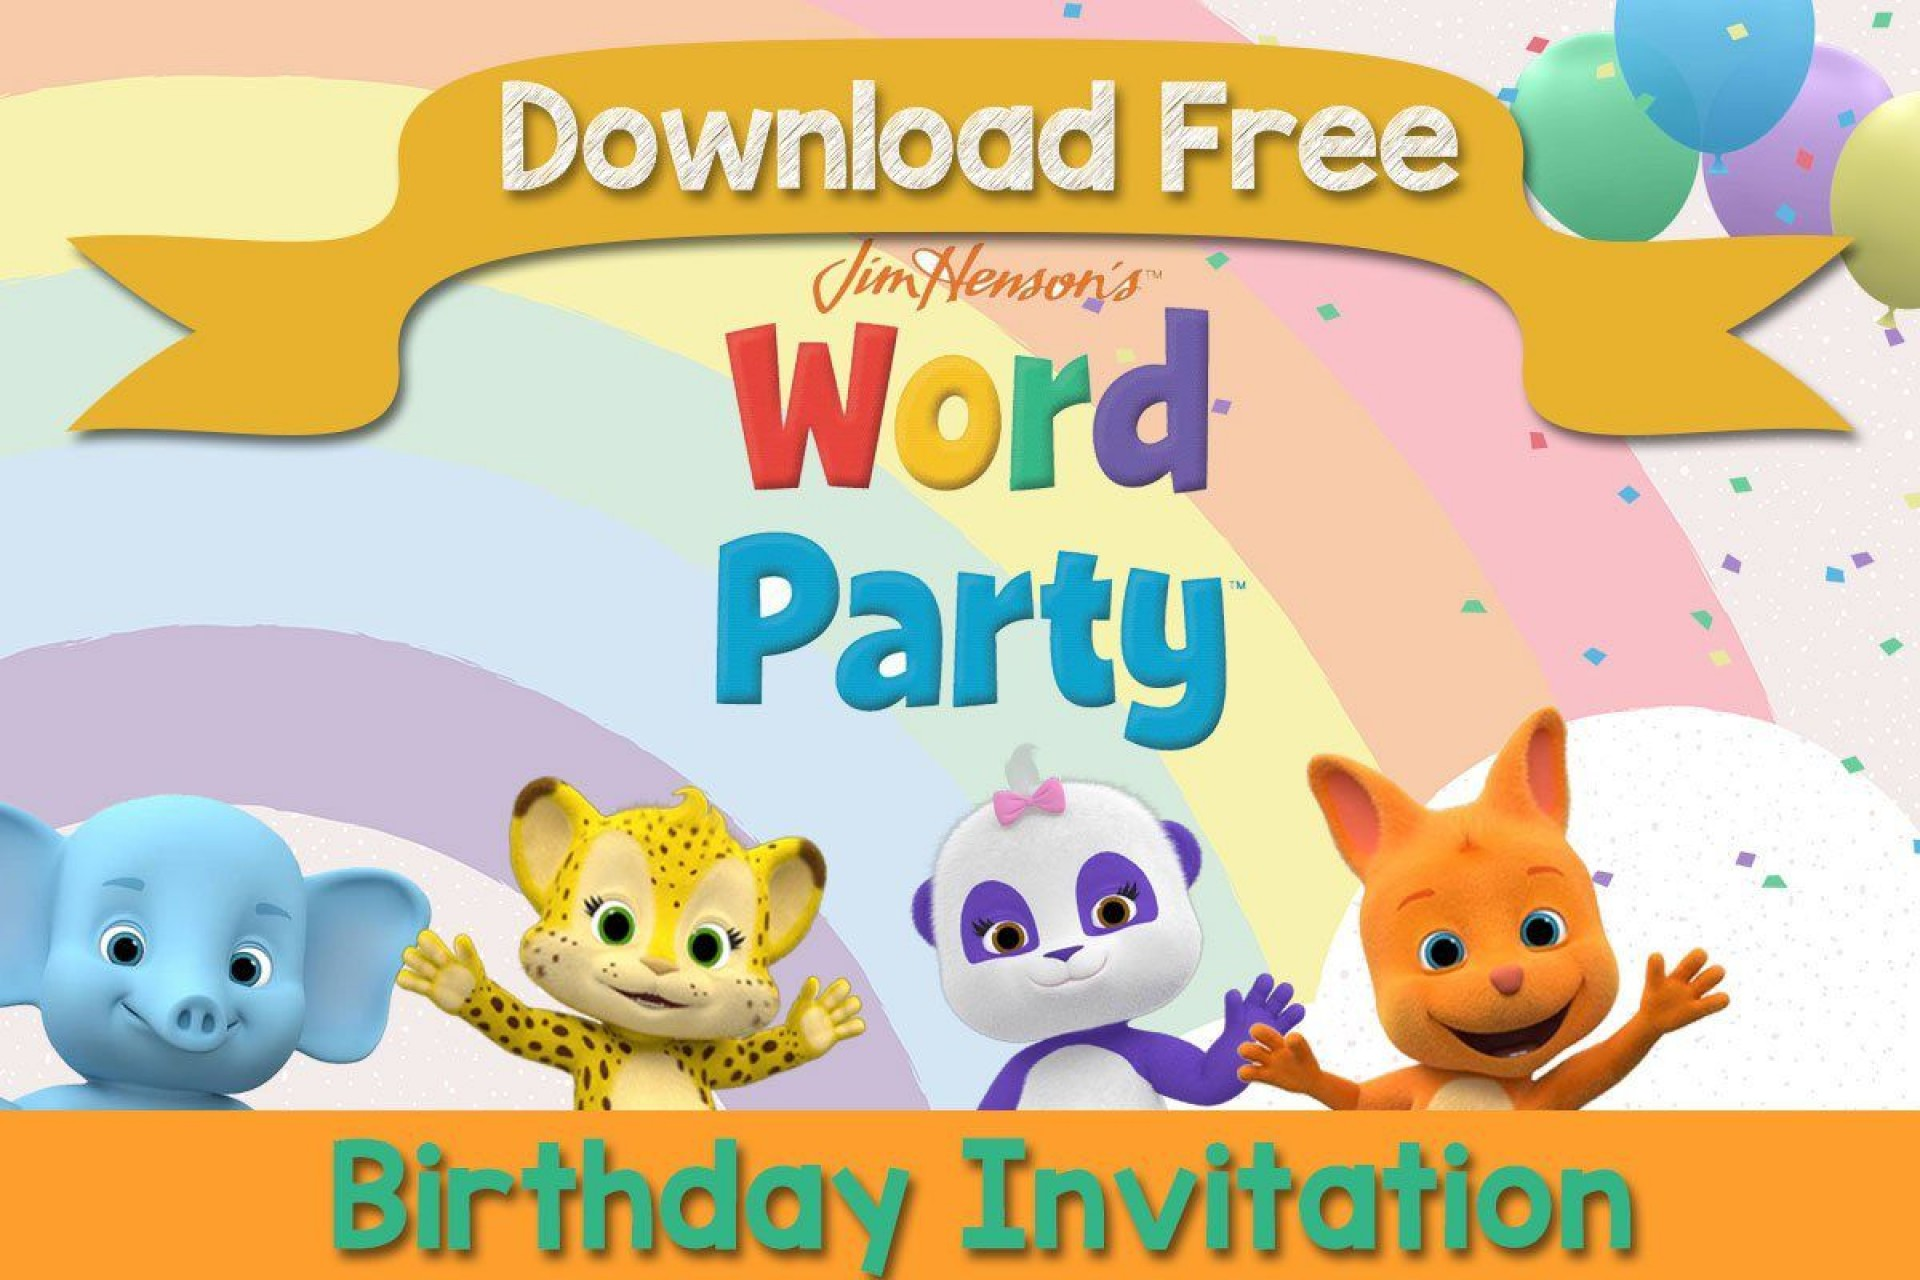 005 Breathtaking Free Birthday Party Invitation Template For Word Highest Clarity 1920